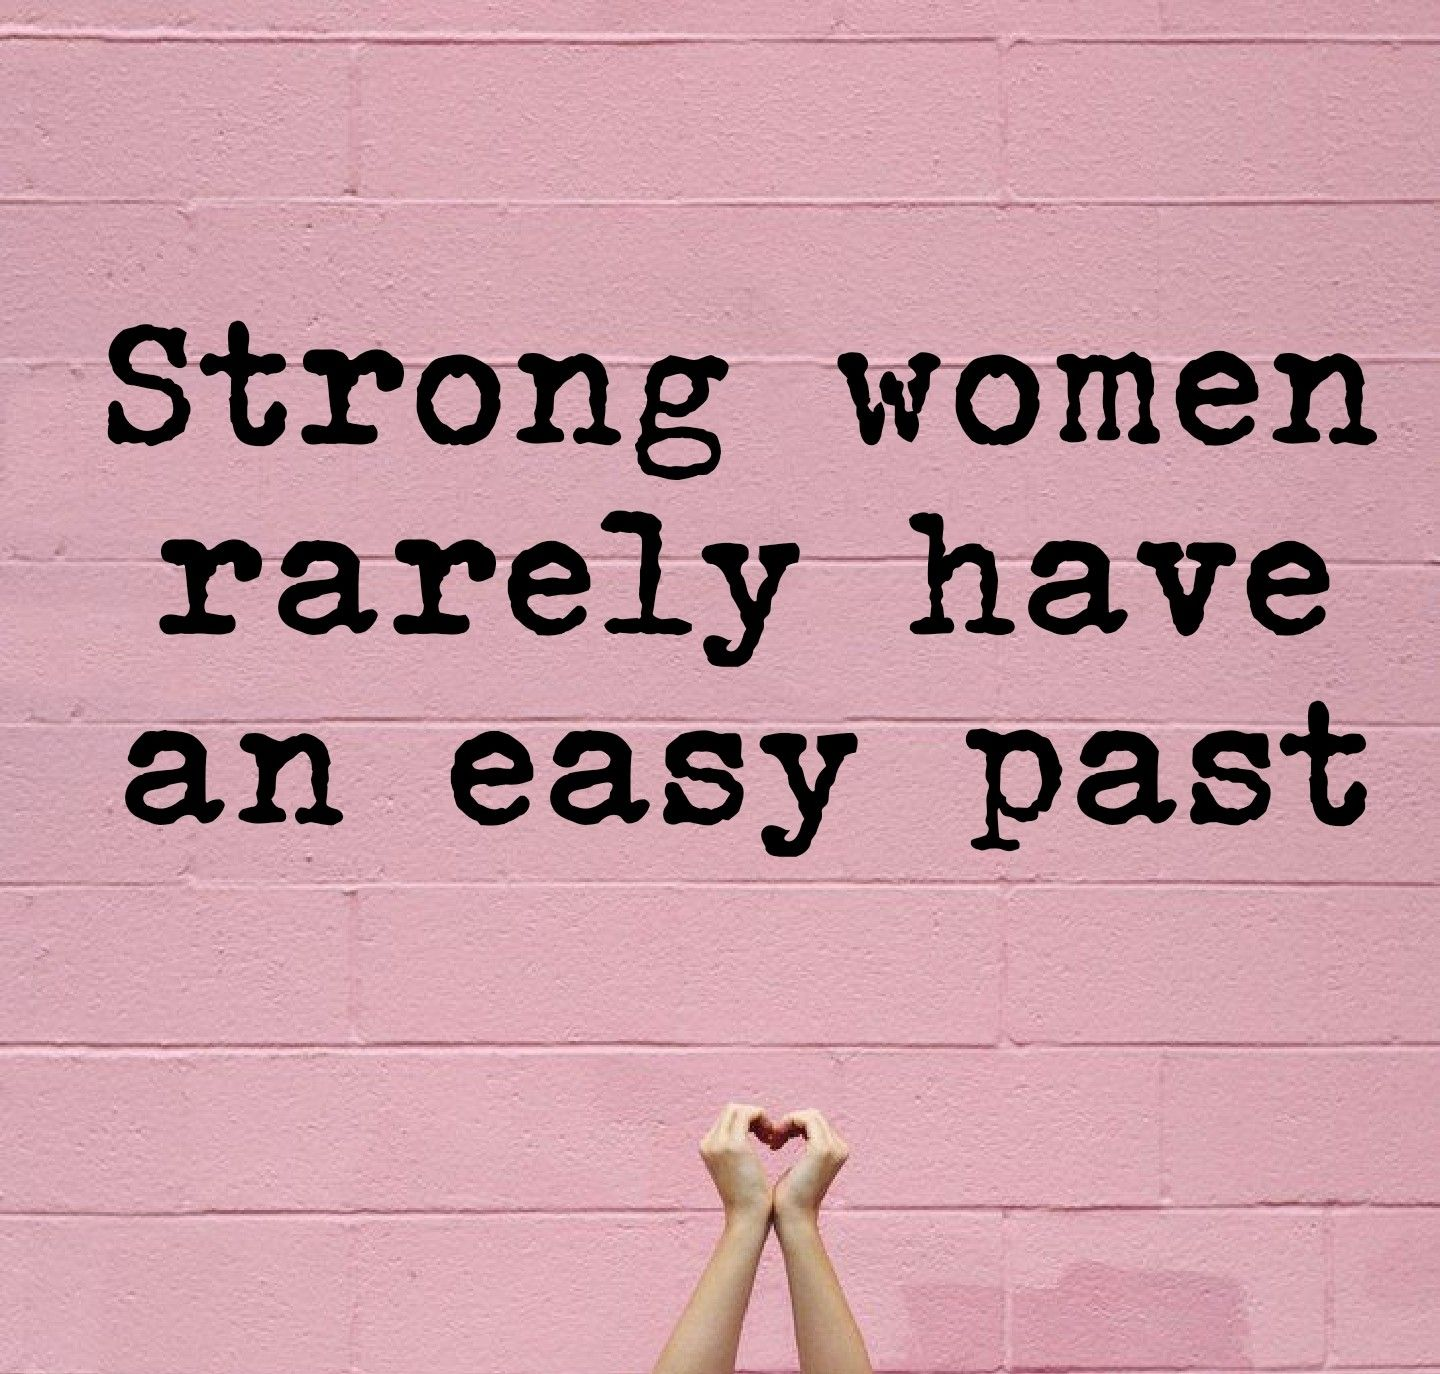 No Words Quote It Building Creating Strong Positive Independent Women One Quote At A Time Strong Quotes New Quotes Quotes About Strength